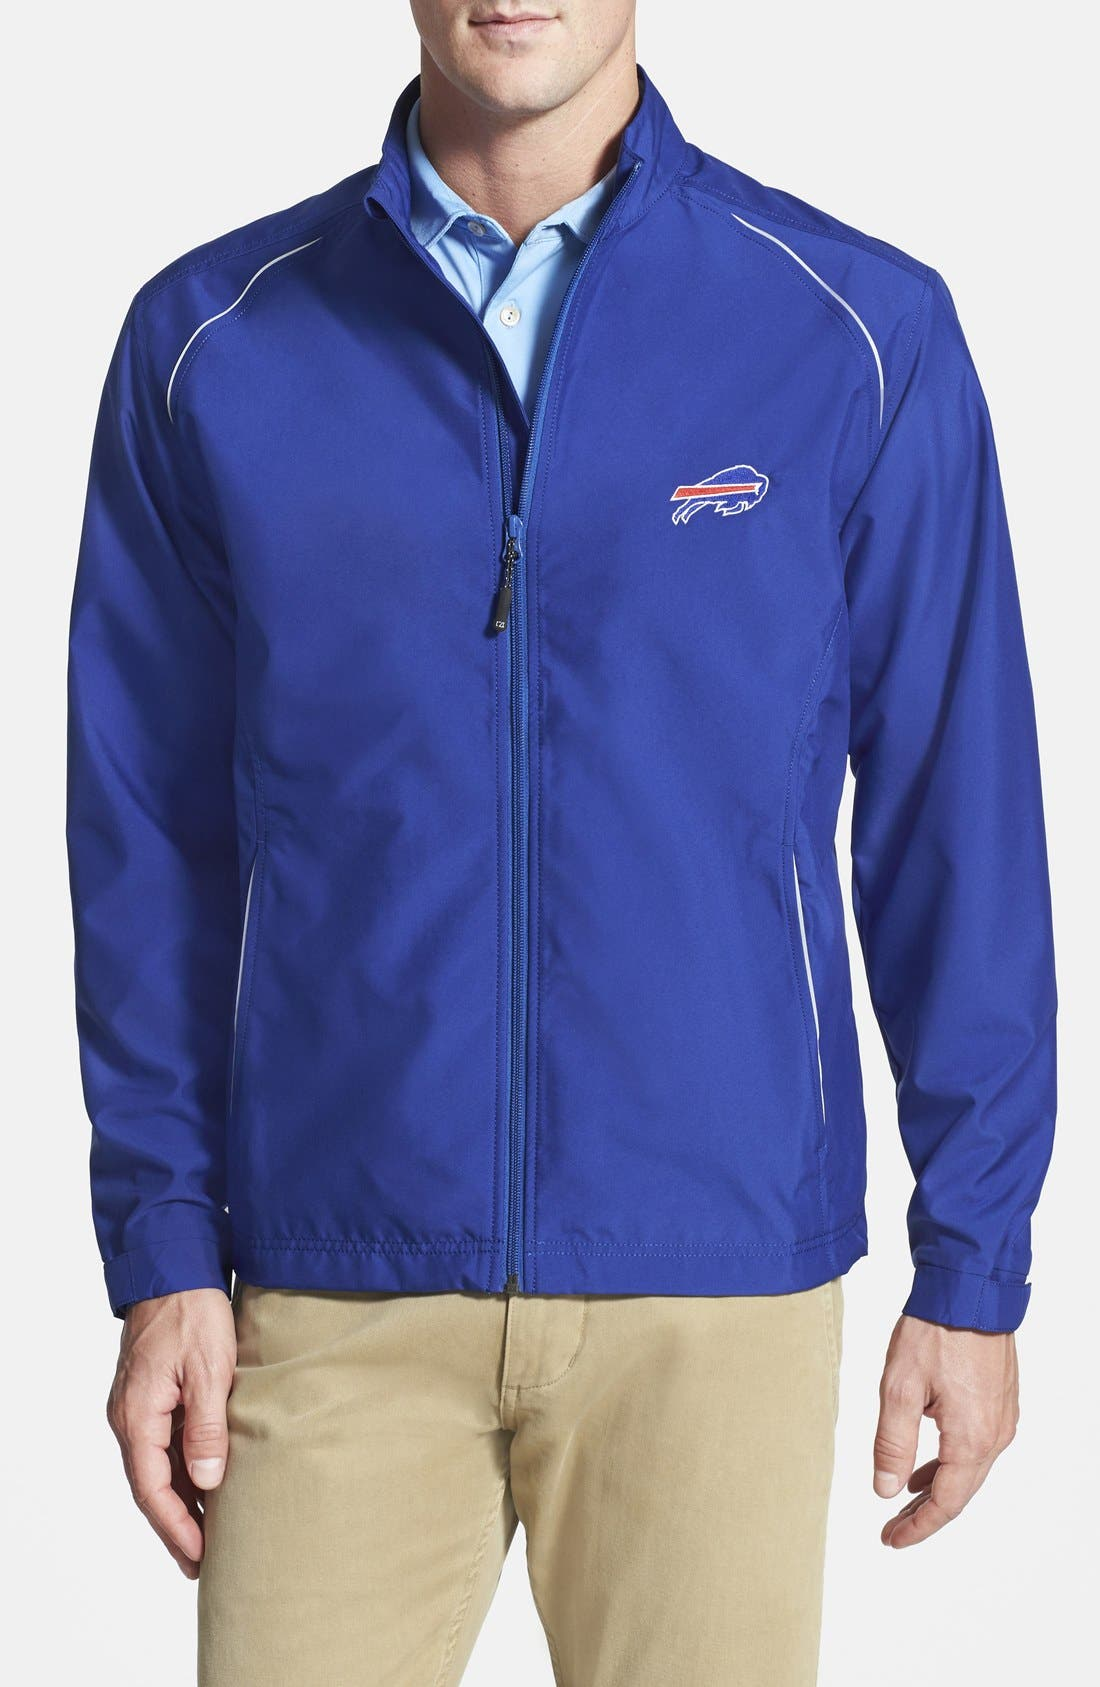 Buffalo Bills - Beacon WeatherTec Wind & Water Resistant Jacket,                             Main thumbnail 1, color,                             462